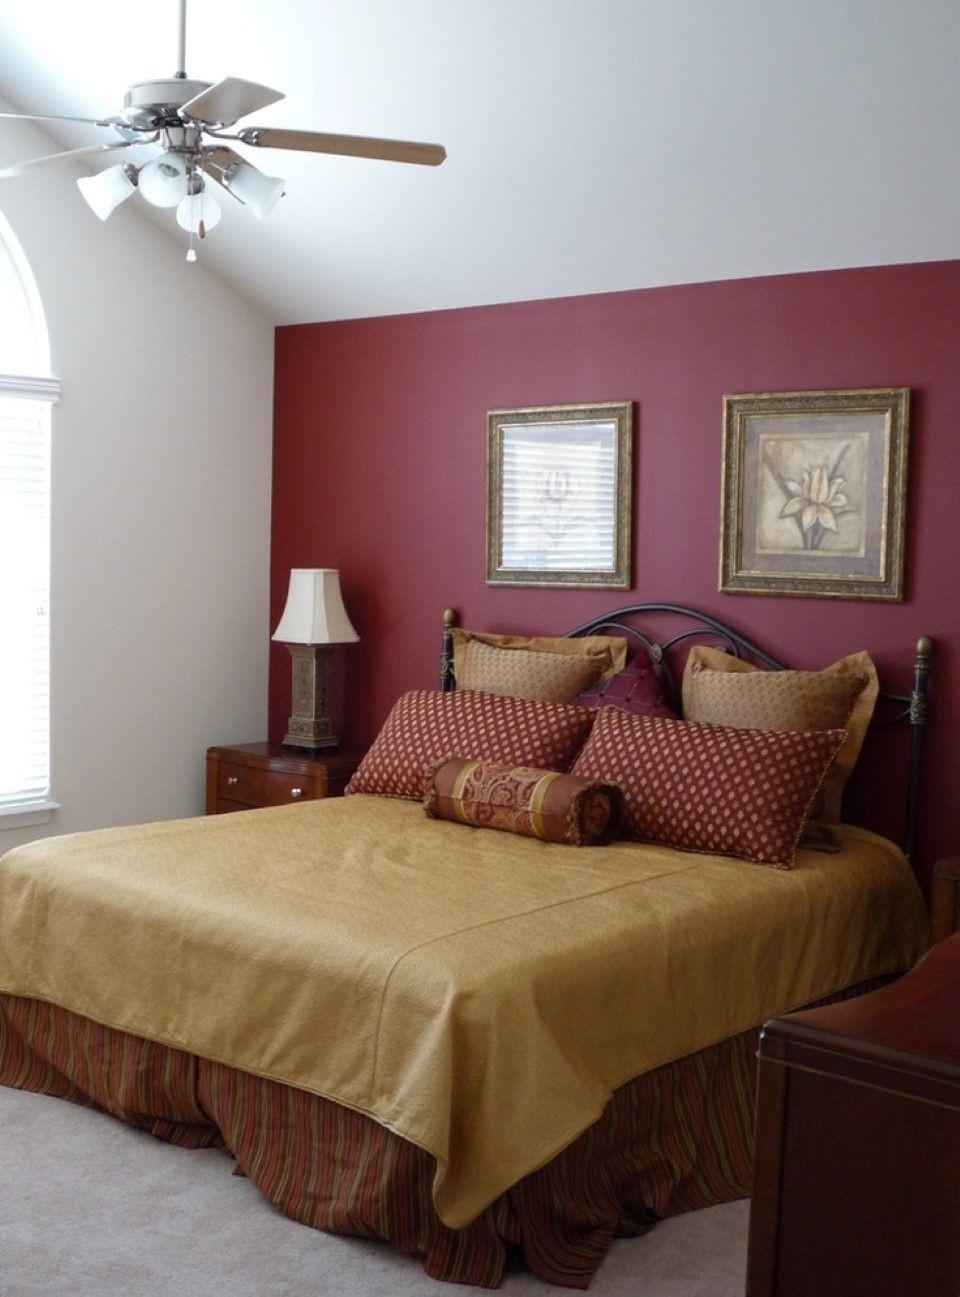 bedroom wall decorations ideas yellow accents accent on accent wall ideas id=53685